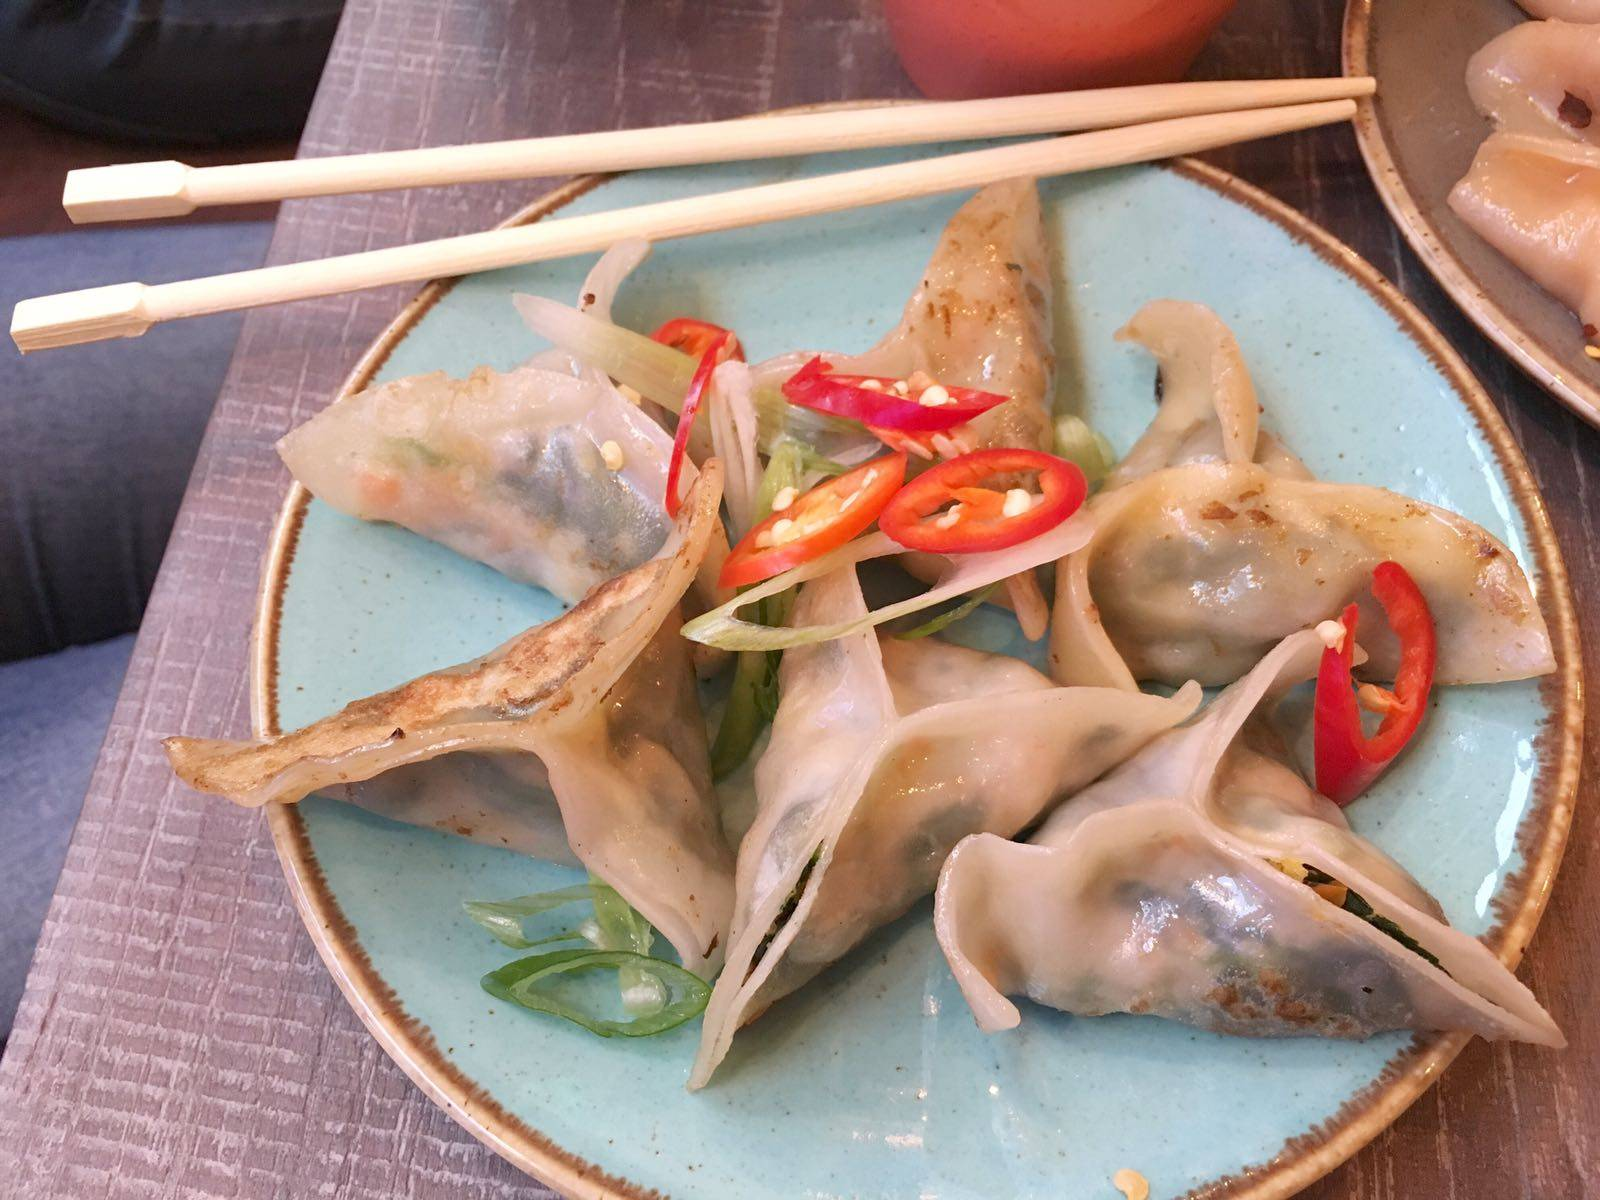 Ugly Dumpling Vegan Carnaby Street London